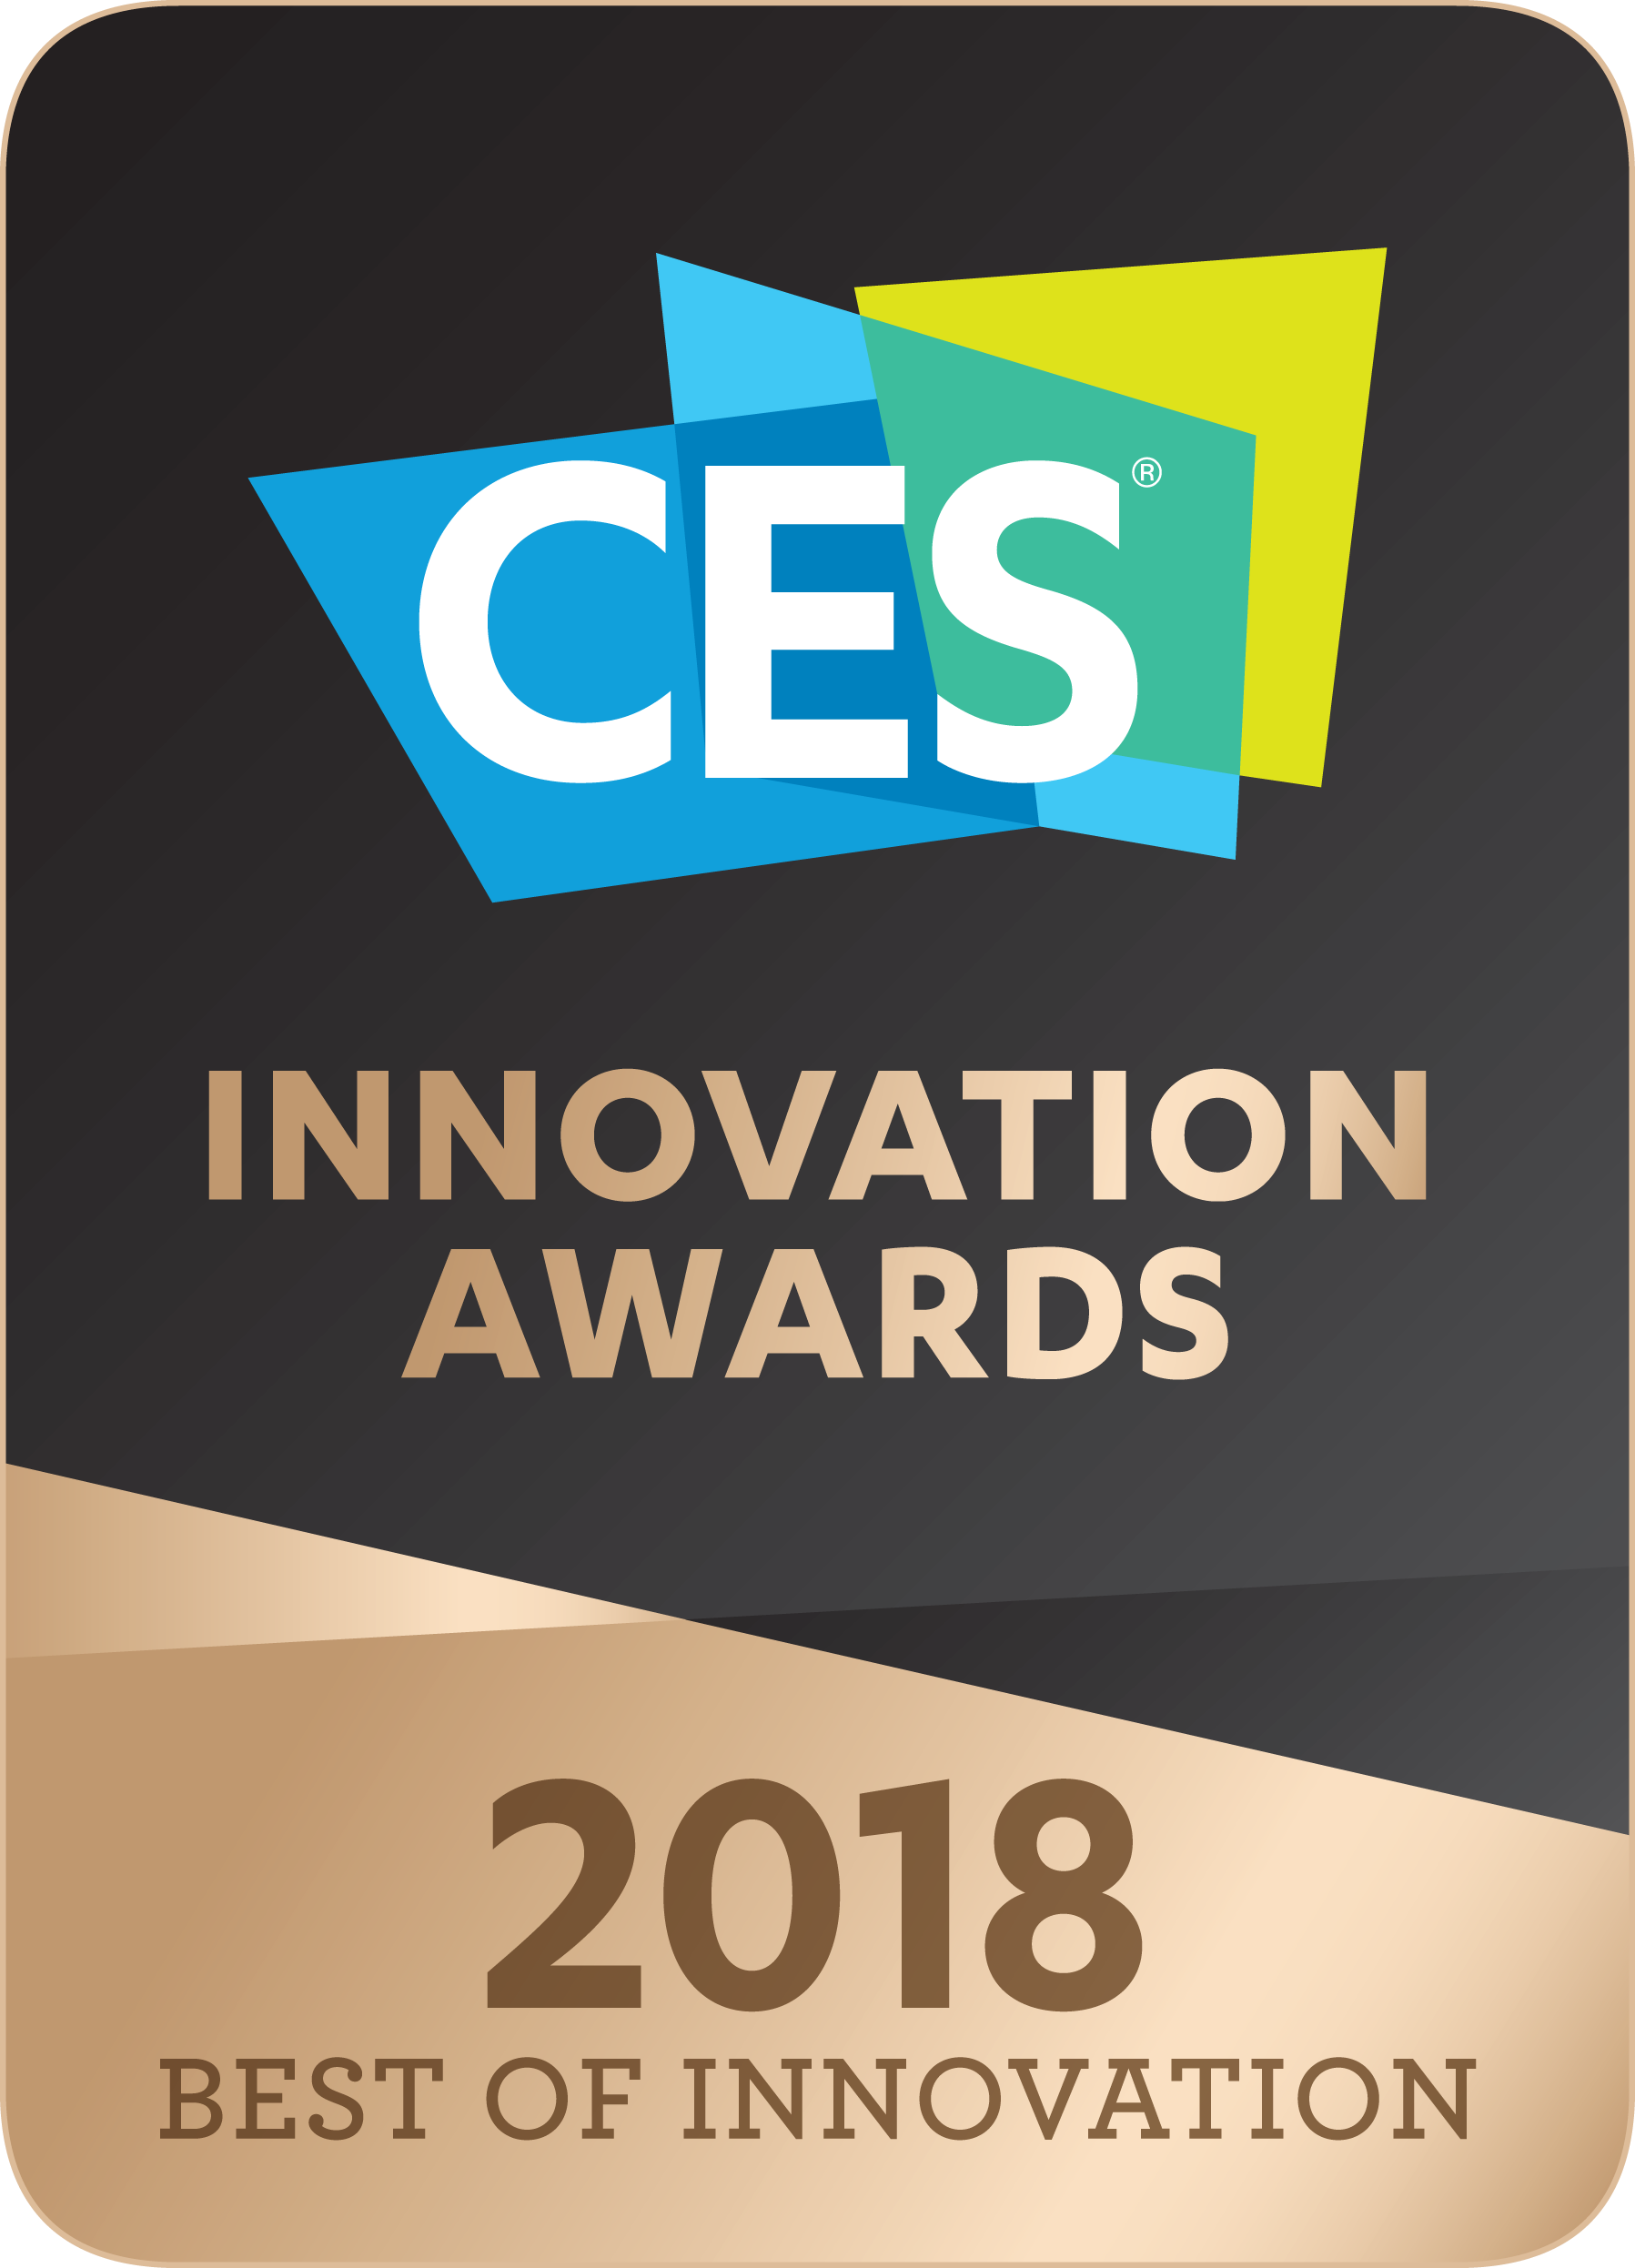 The CES 2018 Best of Innovation Award